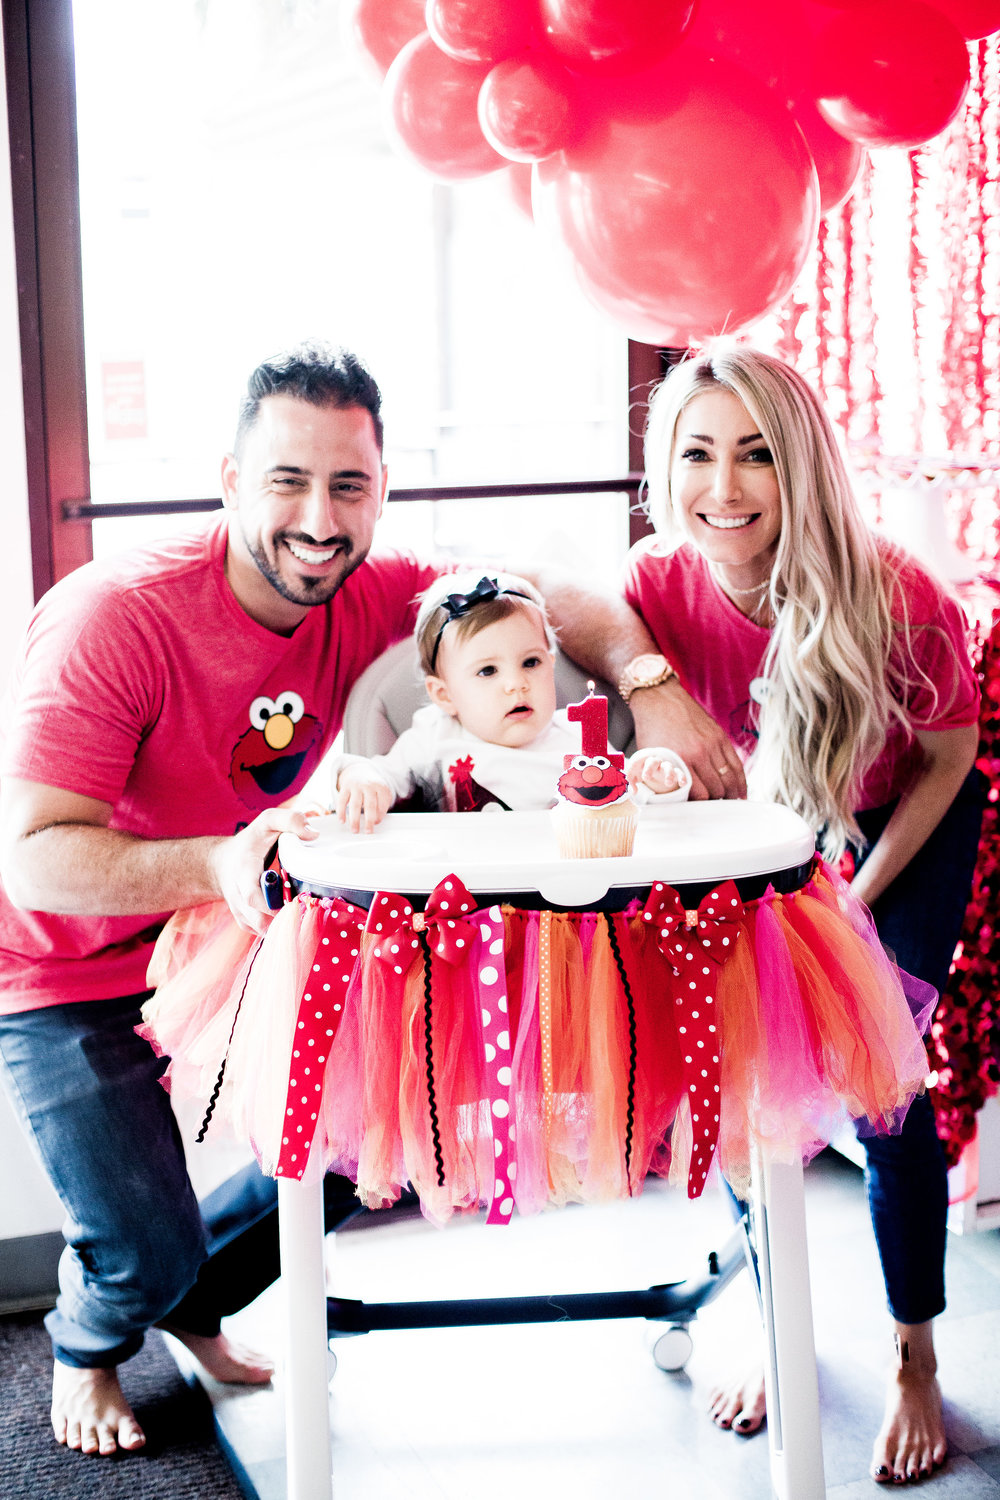 Alexis'_1st_Birthday_04.07.18._-14.jpg